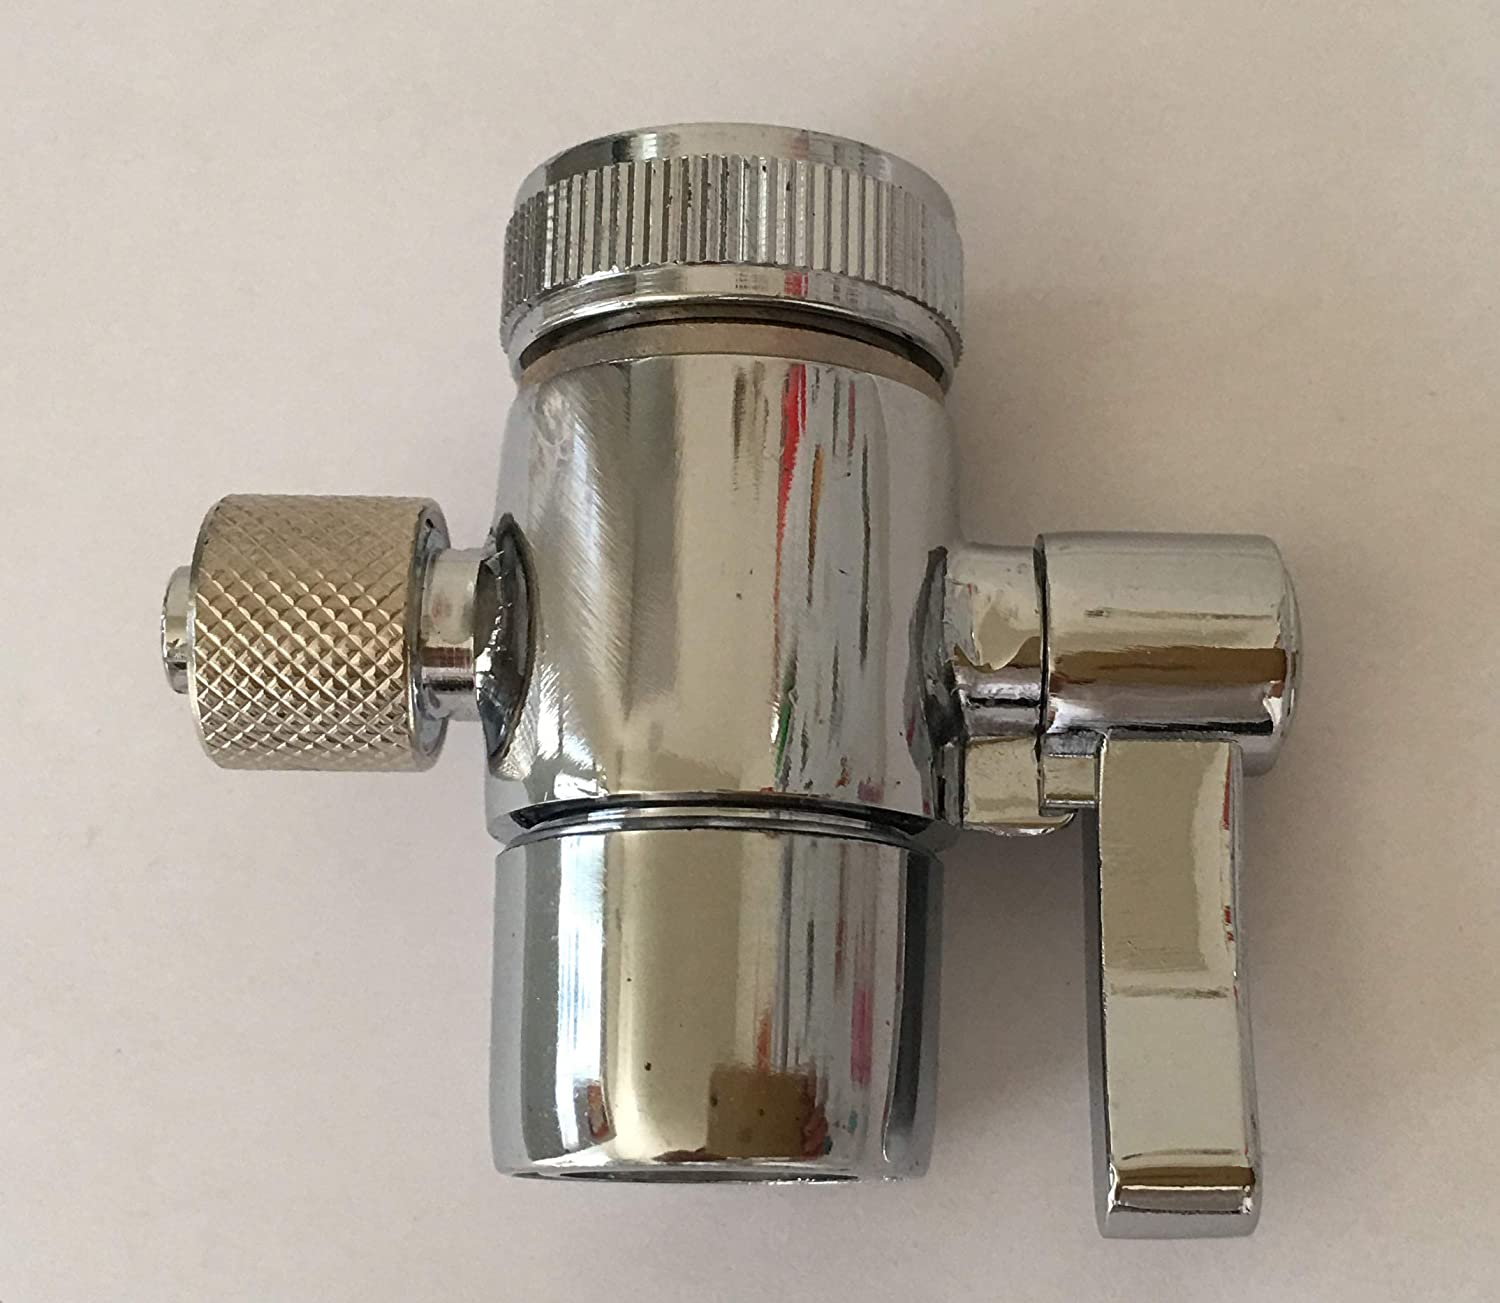 Malida diverter valve for counter top Water Filters Faucet Adapter, 1/2 inch female thread with push on 3/8 inch tubing.